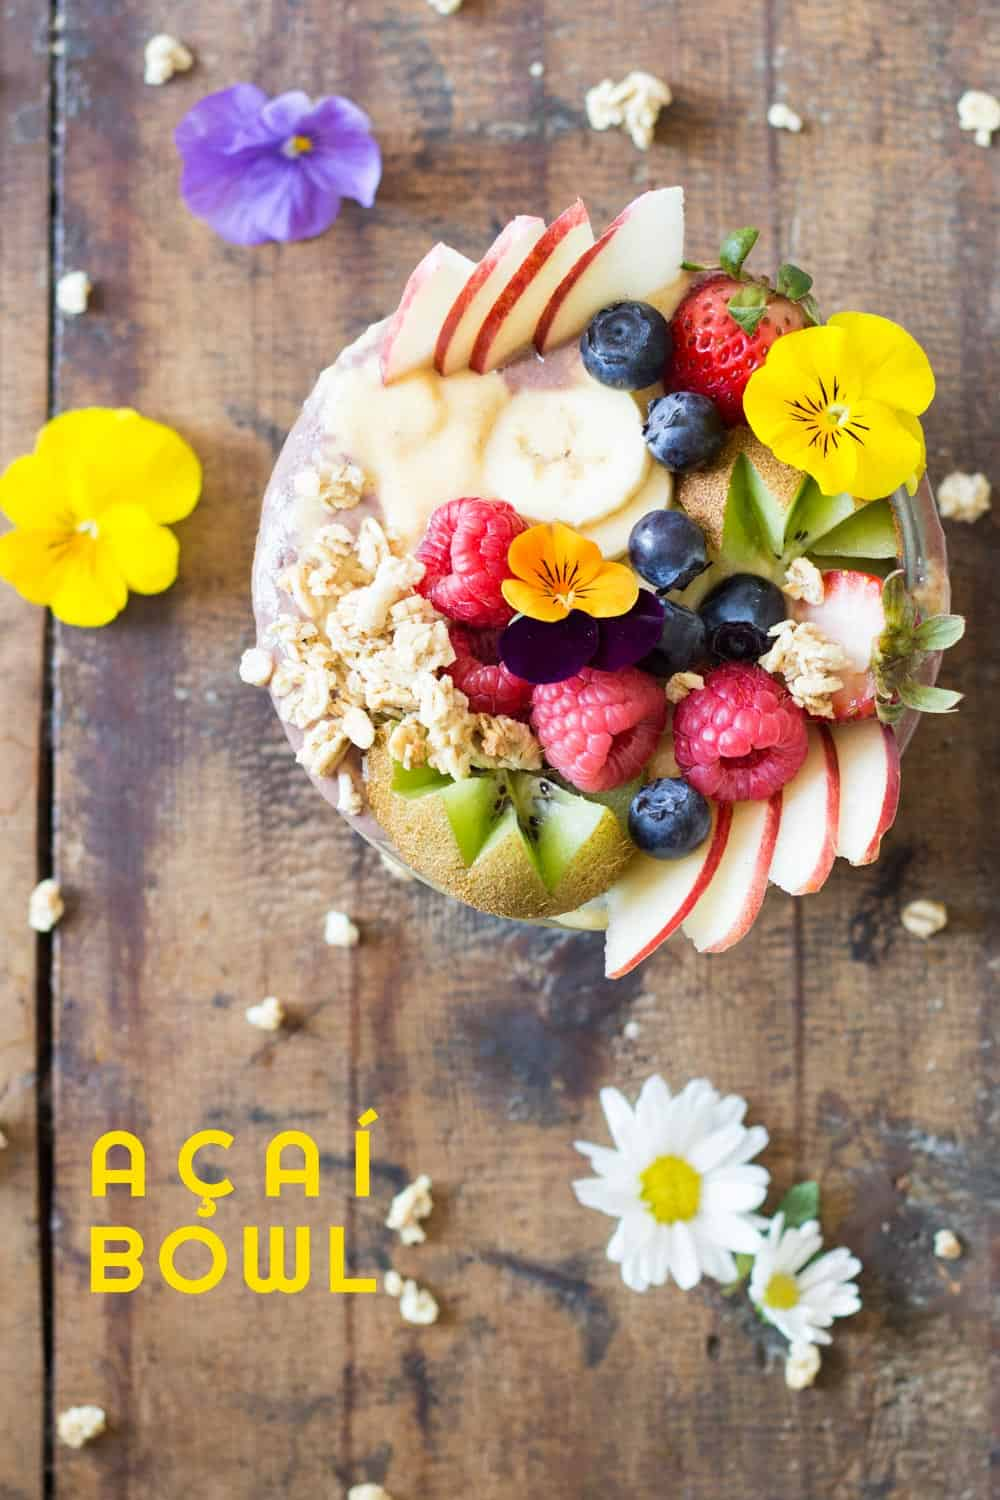 Out of this world Acai Bowl made in 10 minutes. Delicious açaí berry smoothie and sweet mango smoothie made in a blender, beautiful fresh fruit and granola.